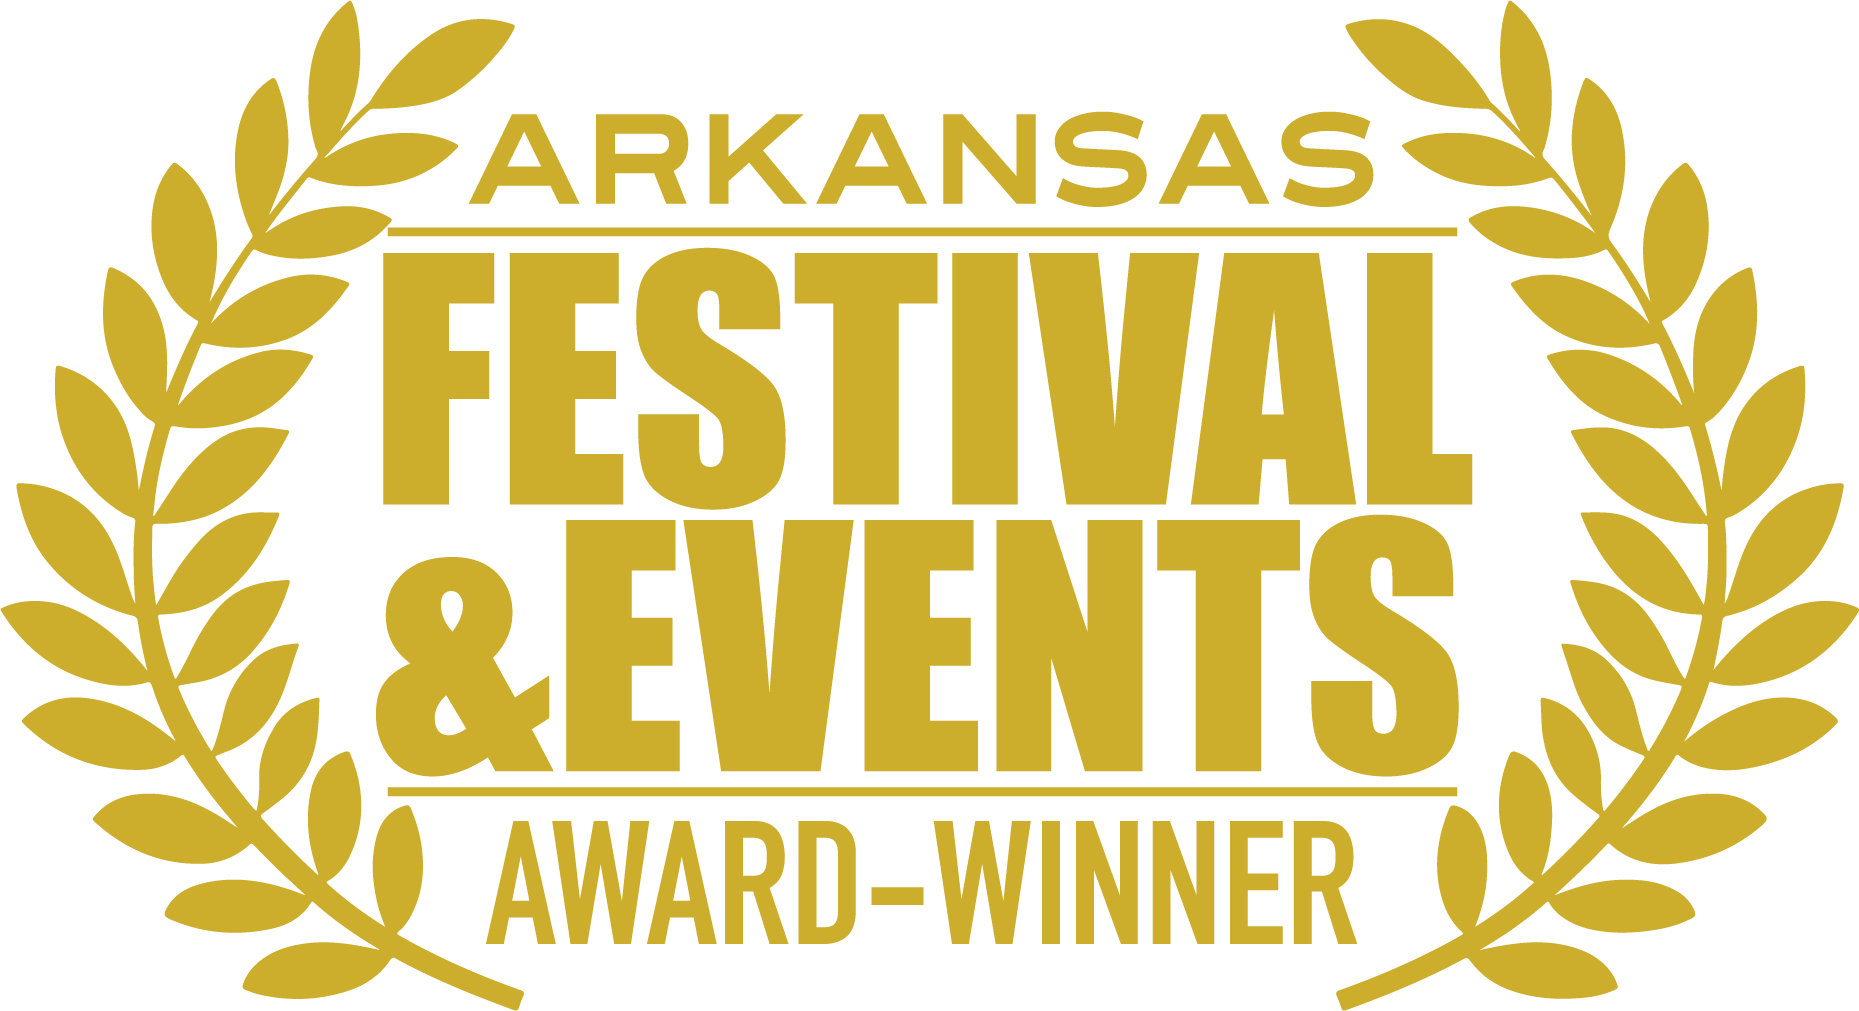 Arkansas Festival and Events award crest